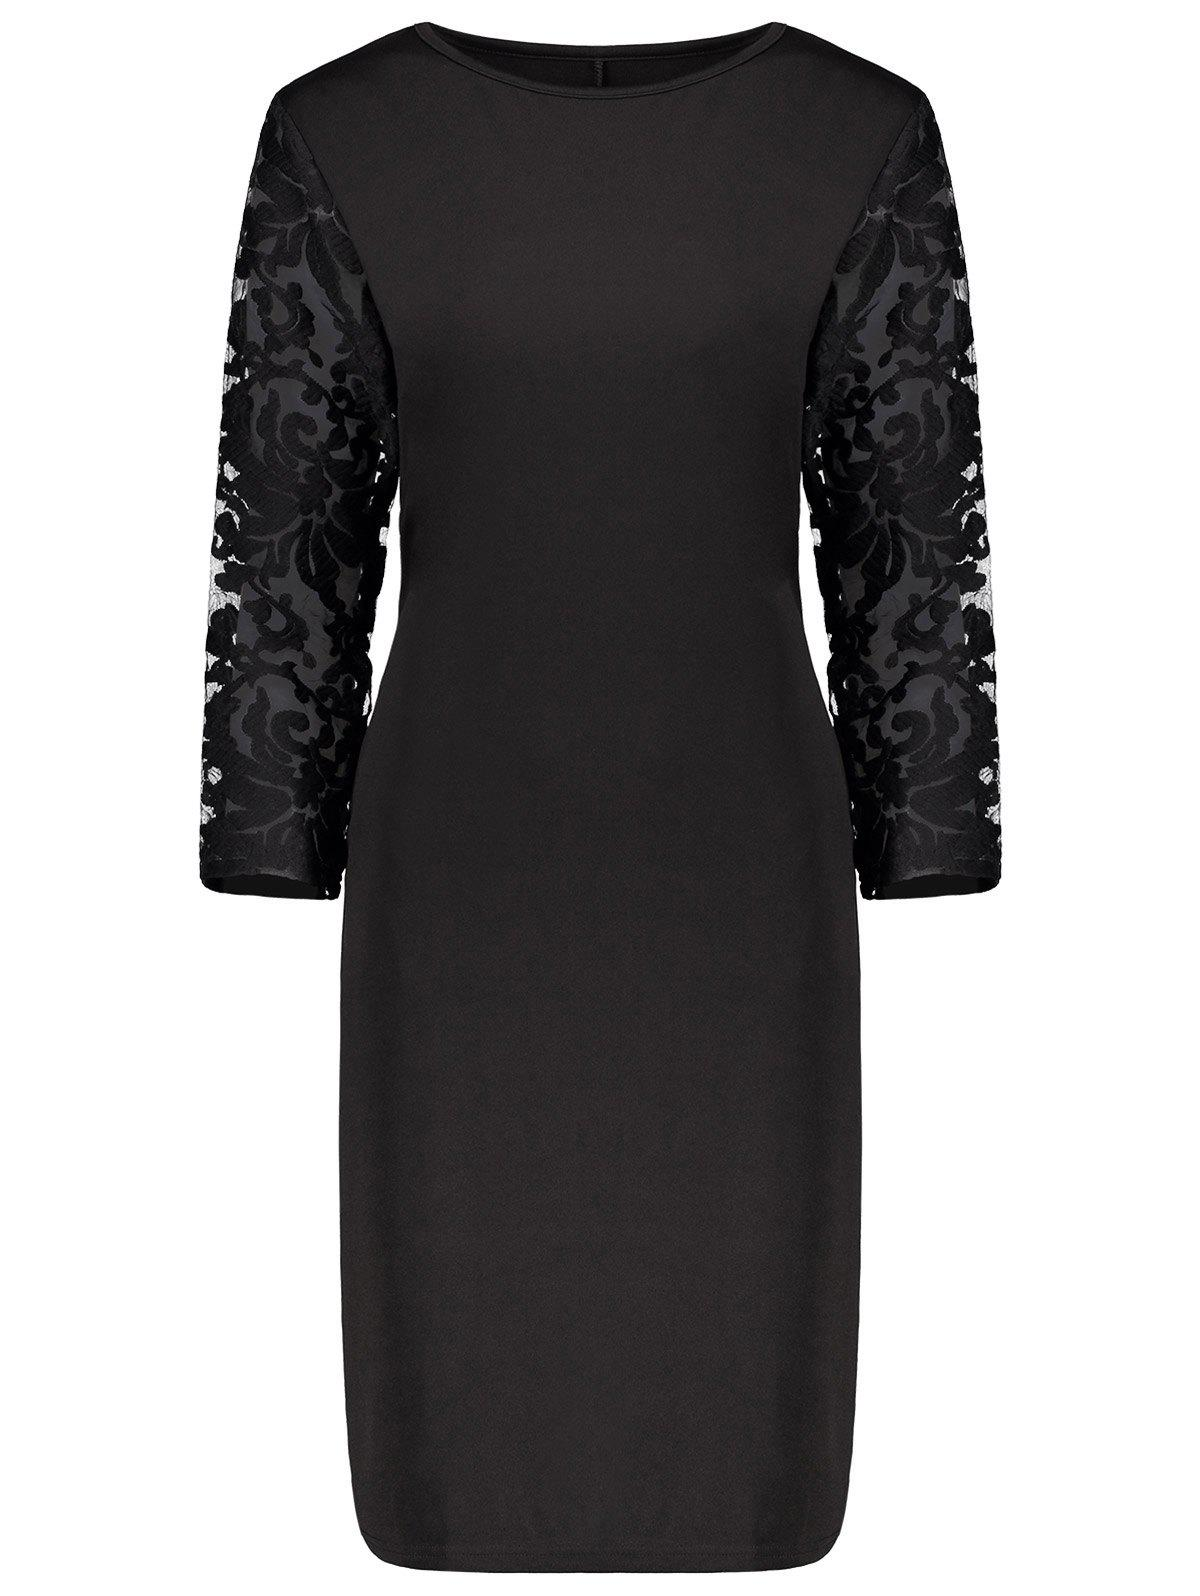 Plus Size Lace Insert Bodycon Sheath Dress sitemap 64 xml